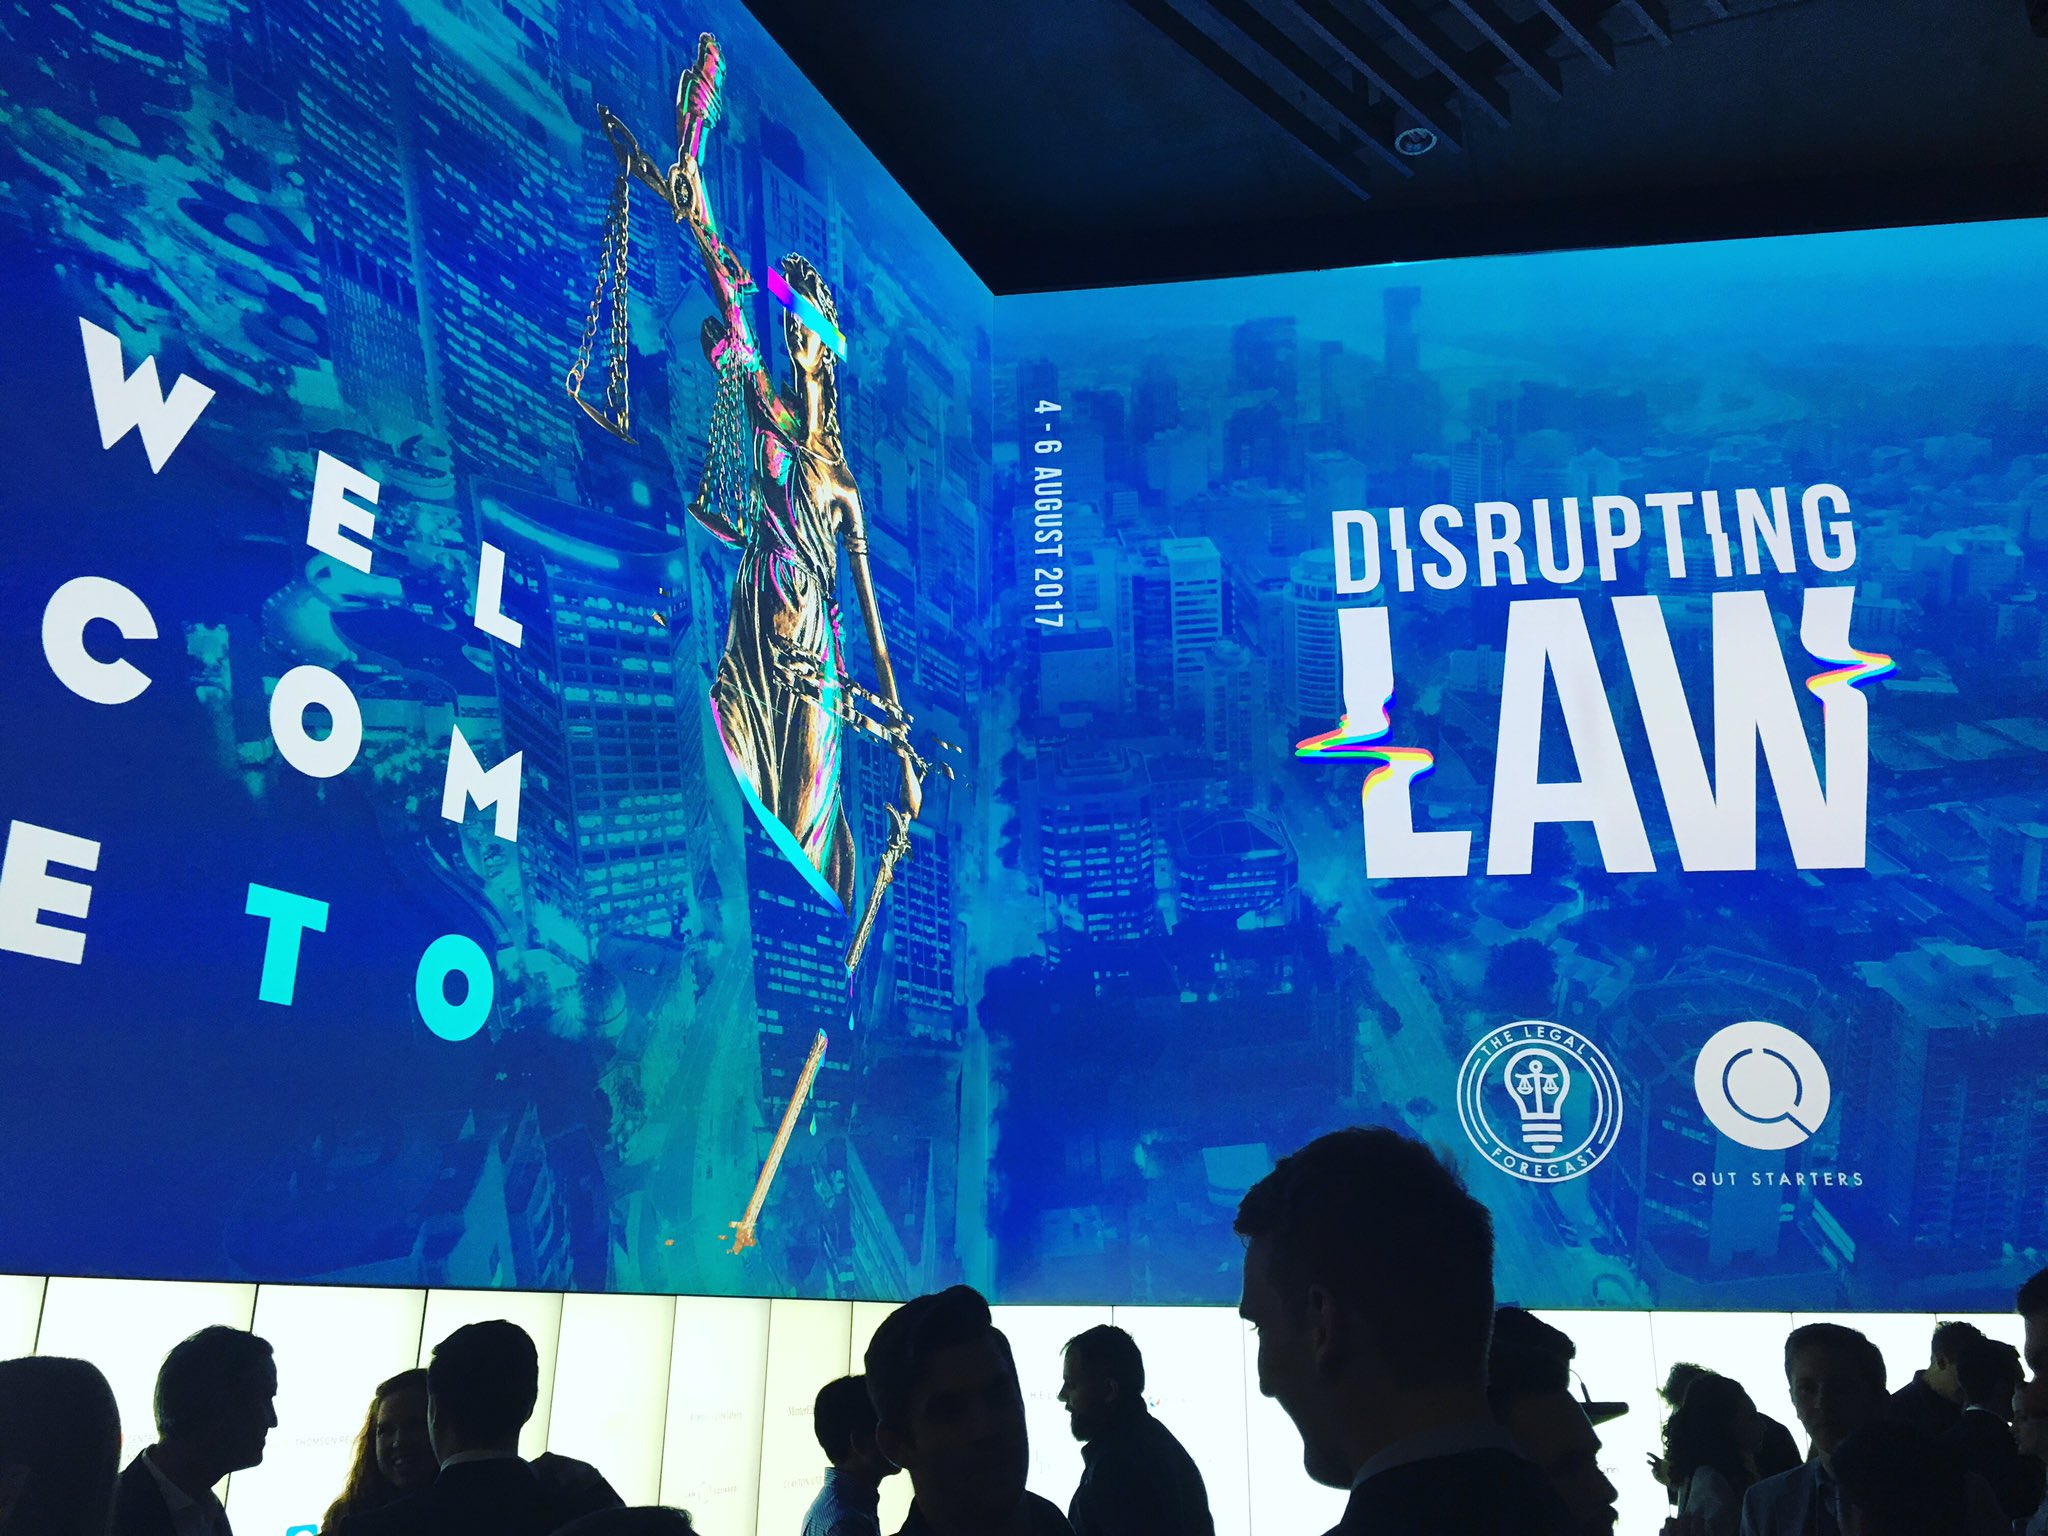 It's Brydon @BuildTechLaw & Sidney - live from the #DisruptingLaw #Hackathon -chuffed to be a part of the next gen #legaltech #auslaw https://t.co/CxikTjzTFW